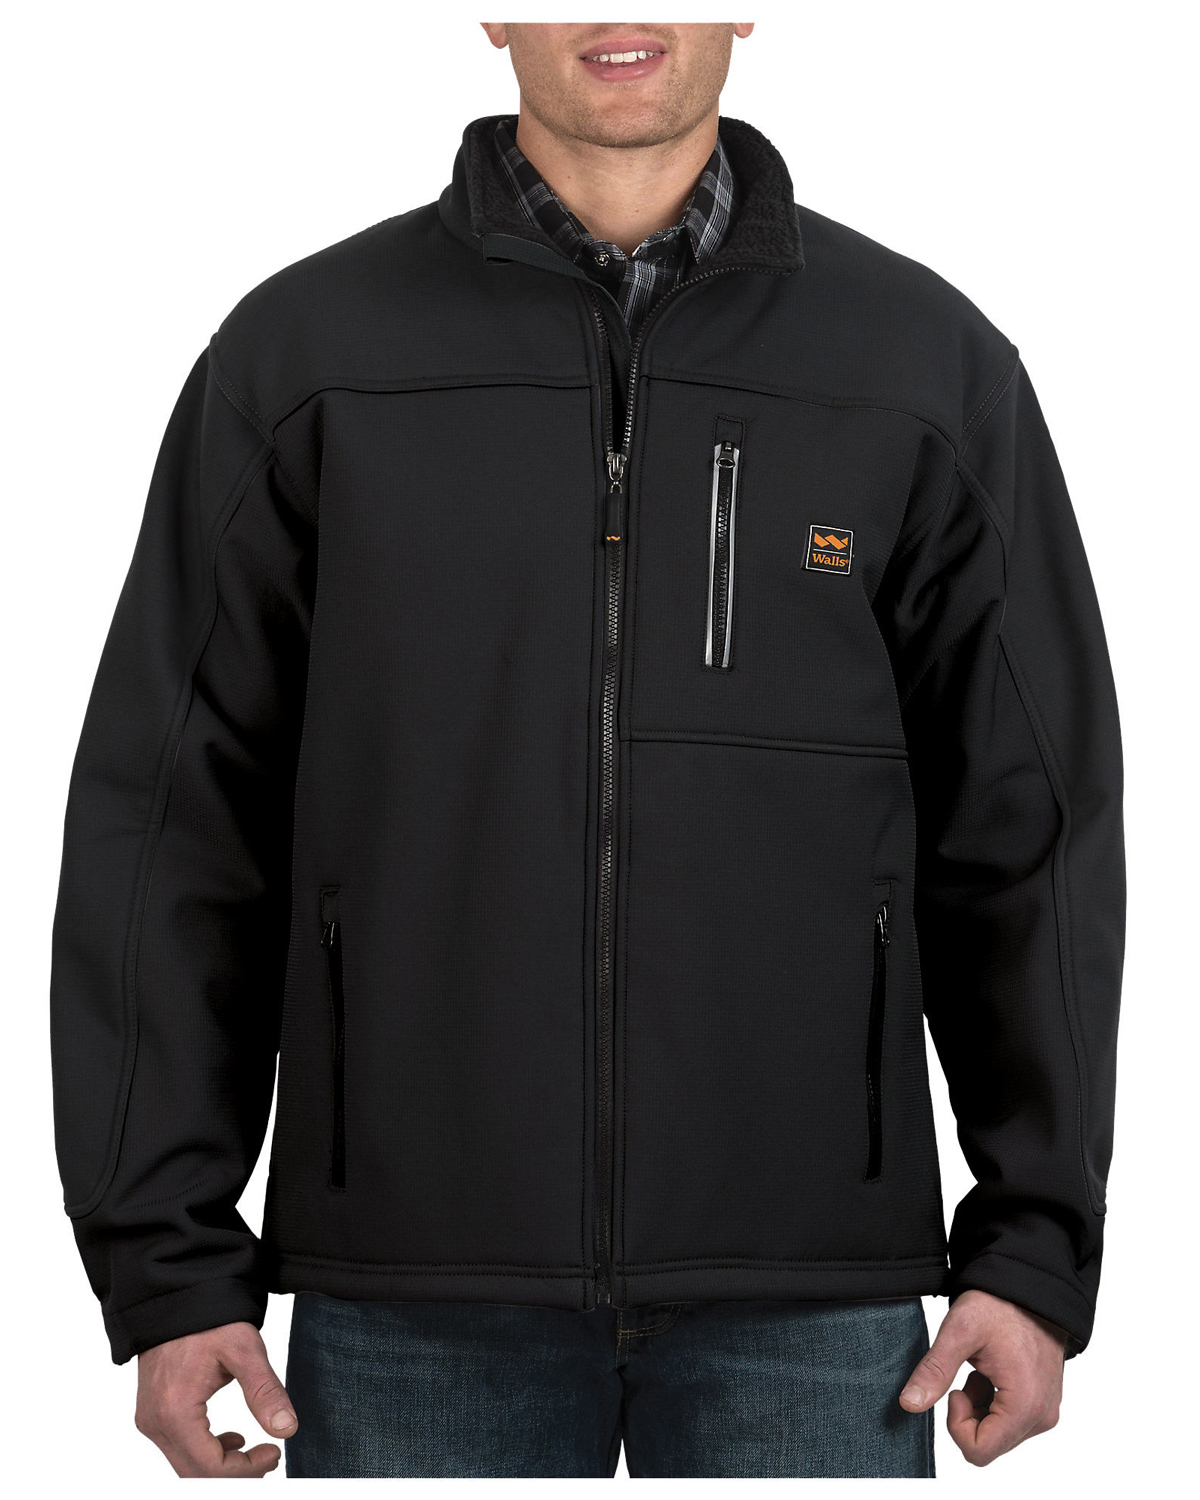 Men's Storm Protector Sherpa Lined Jacket